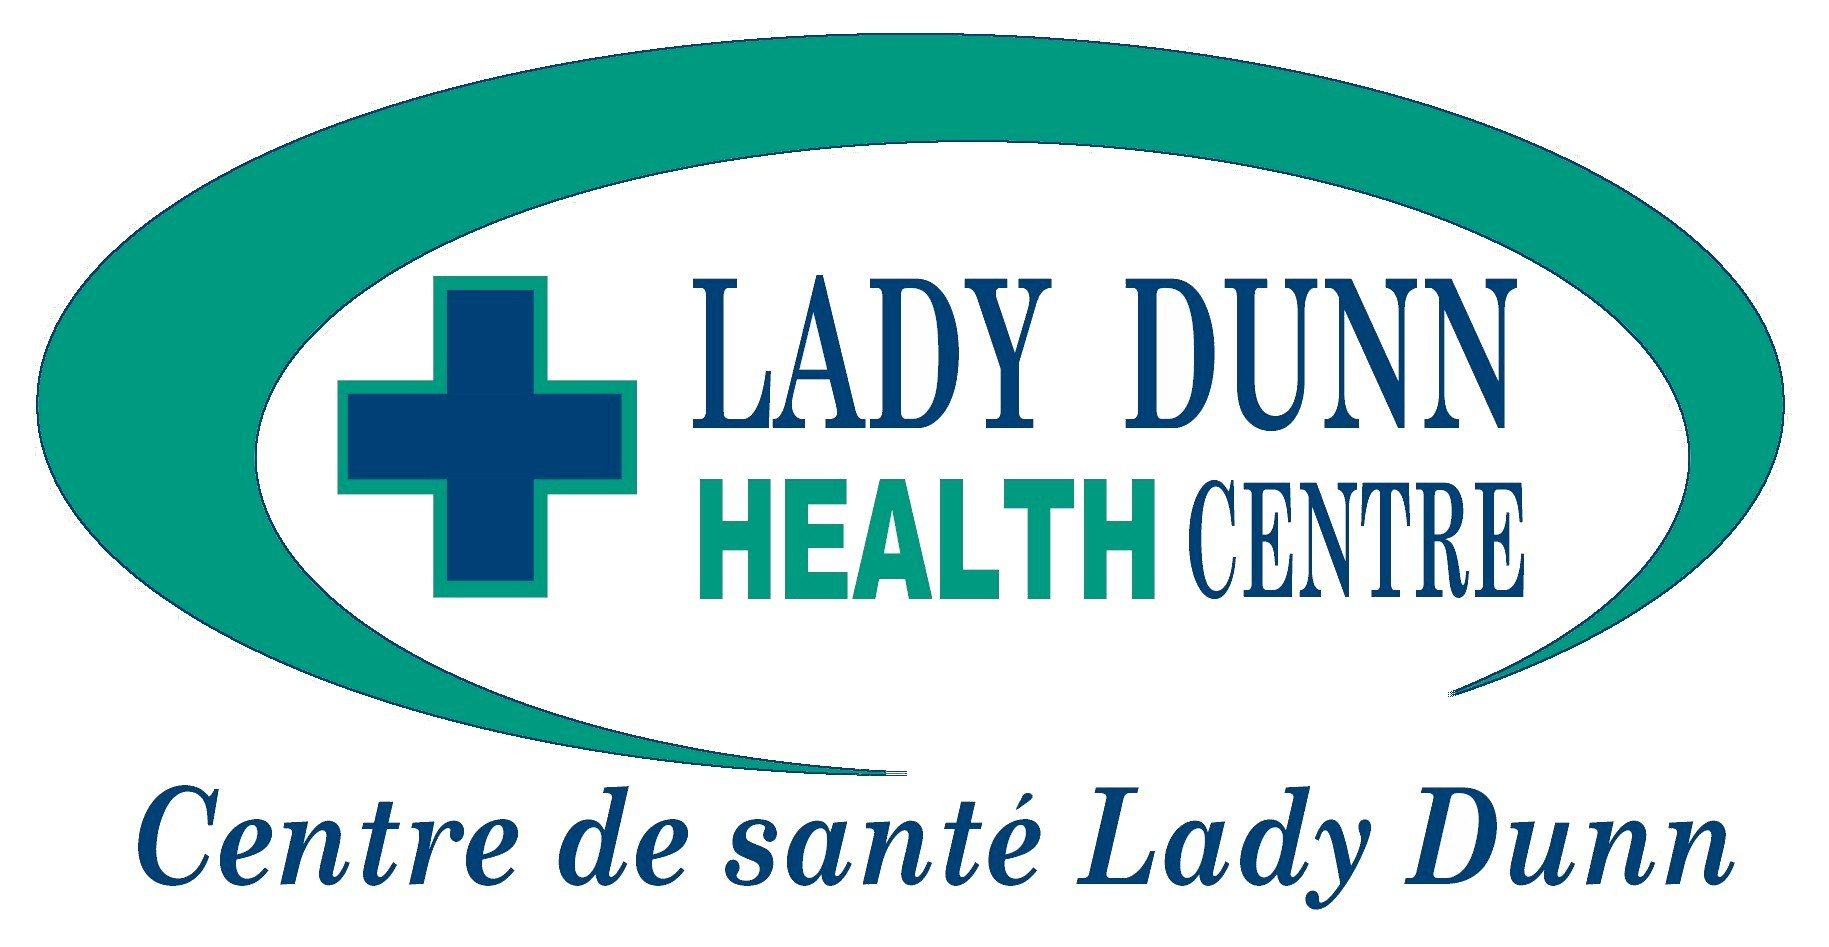 Lady Dunn Health Centre Logo